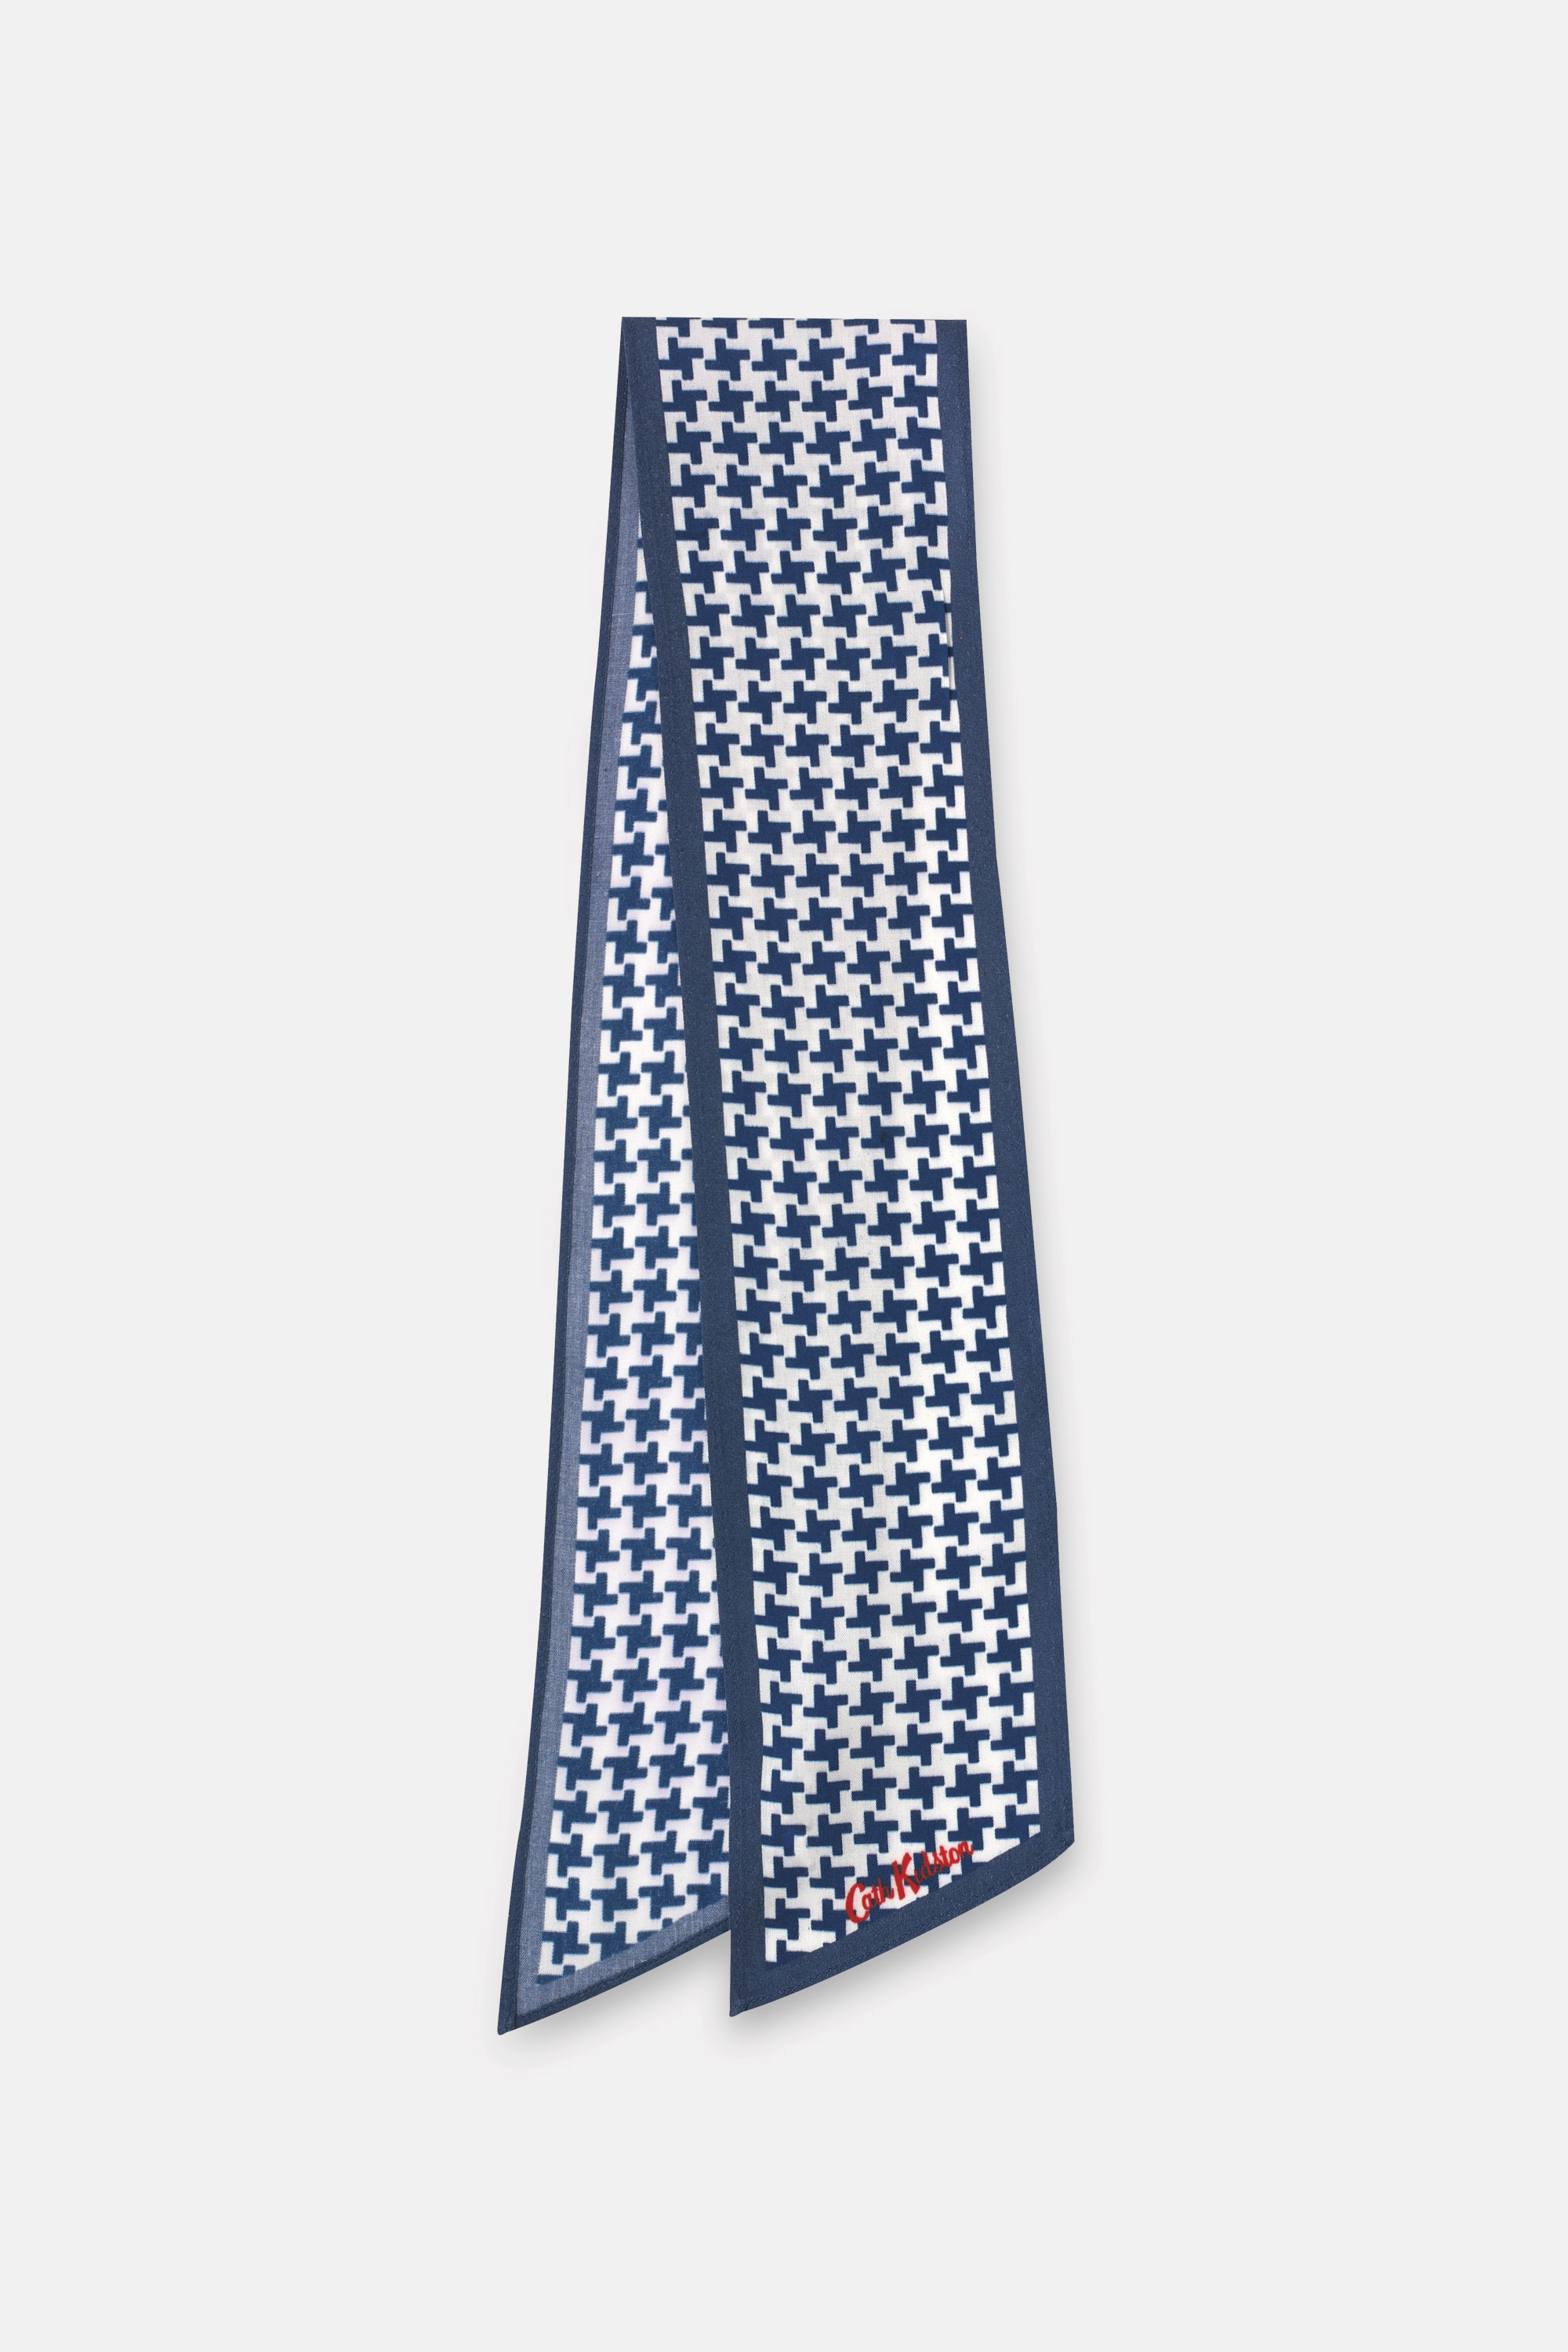 Cath Kidston Houndstooth Scarf in Blue